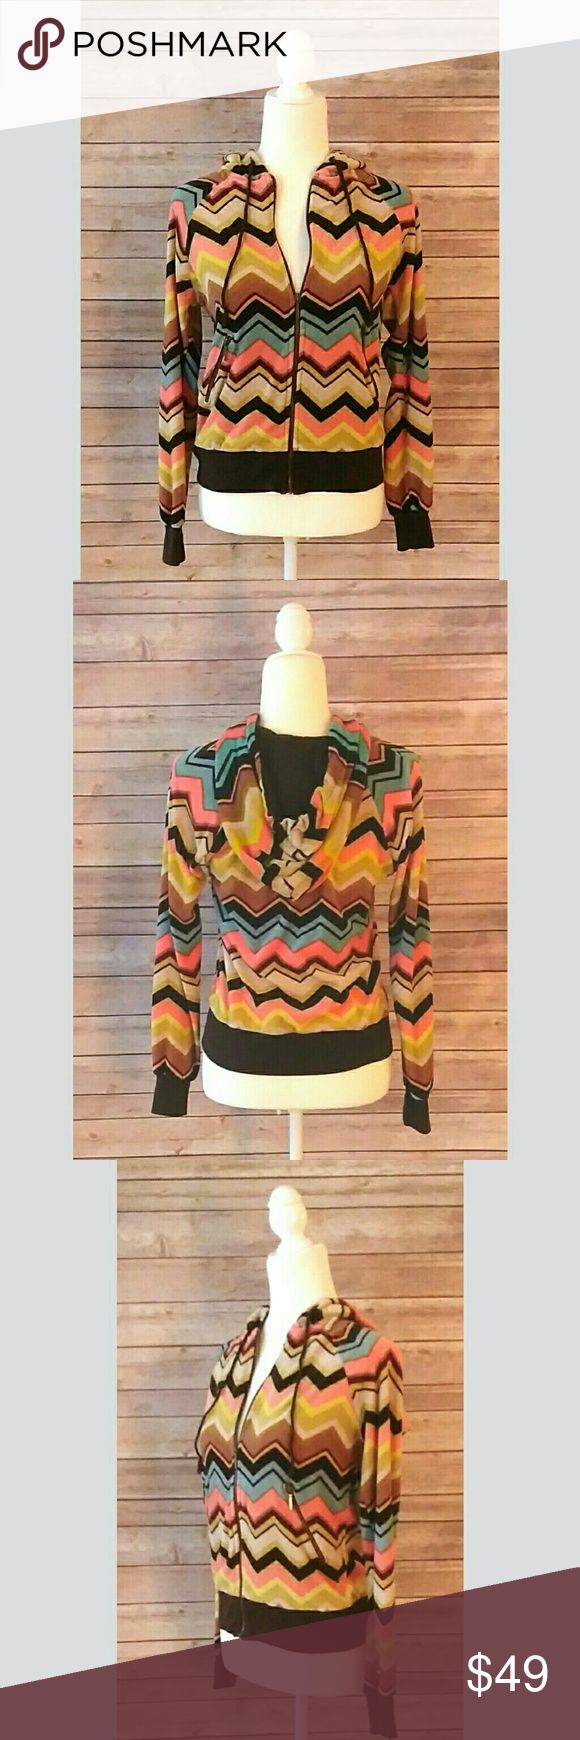 Missoni for Target multicolor velour zip up hoodie Missoni for Target hoodie in a multicolor print.  It has the iconic chevron pattern in brown, tan, yellow, turquoise, pink and burgundy.  It has zippered side pockets.  The hood has a solid brown lining and a brown cord.  Waist and cuffs have a brown trim.  Excellent condition.   Pet free smoke free home. Bin1812 Missoni Tops Sweatshirts & Hoodies